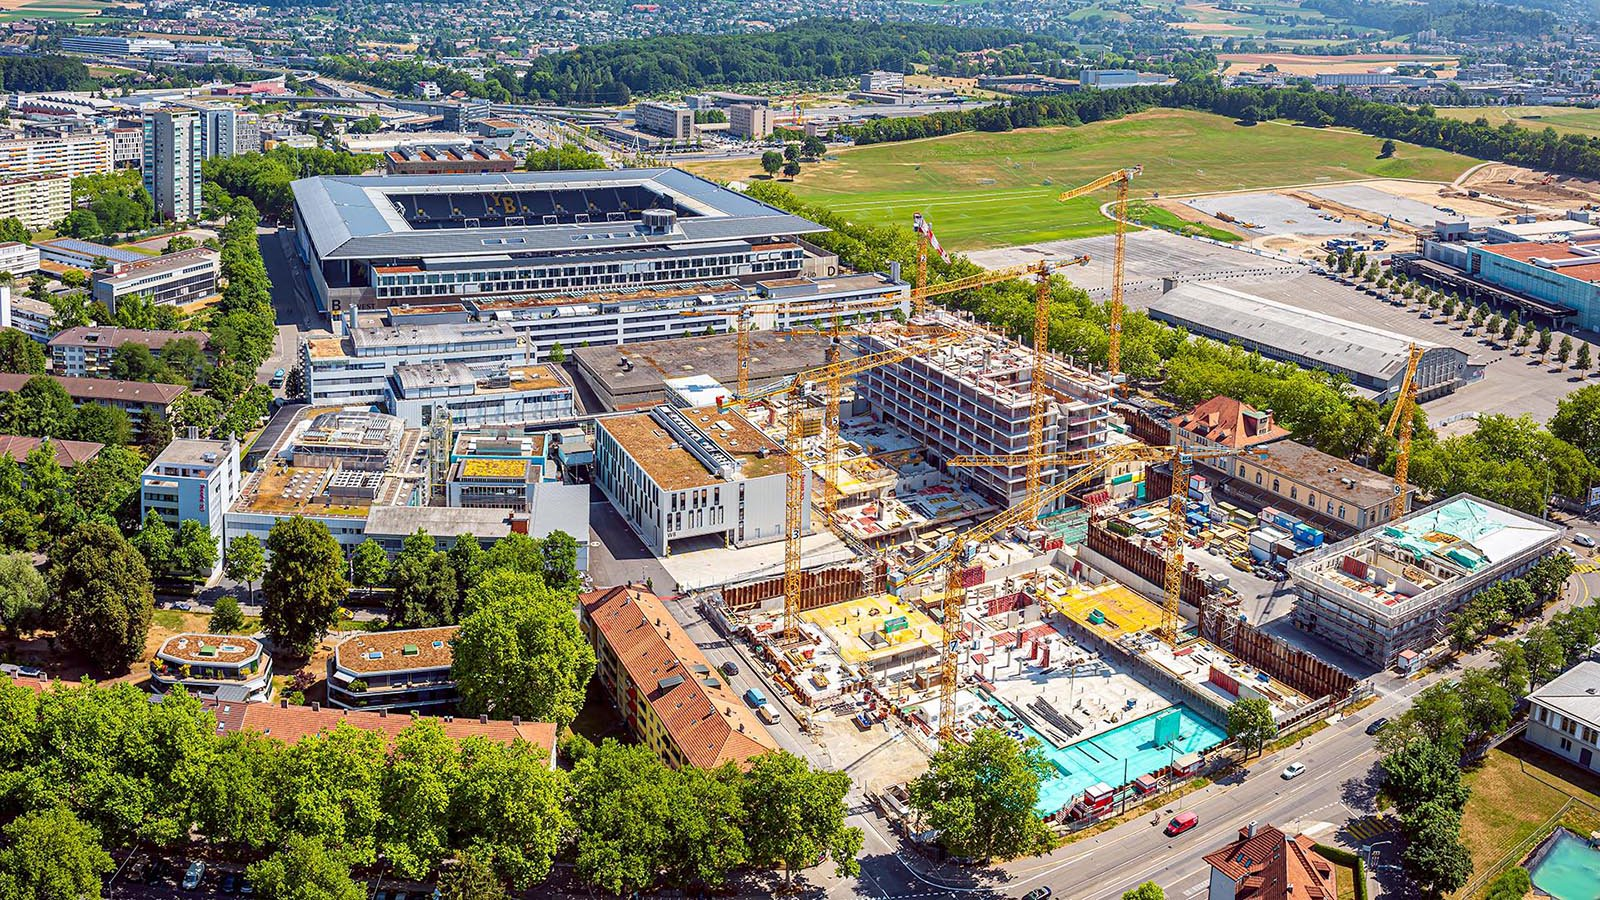 Services aerial photograph of a construction project in Frankfurt, Germany